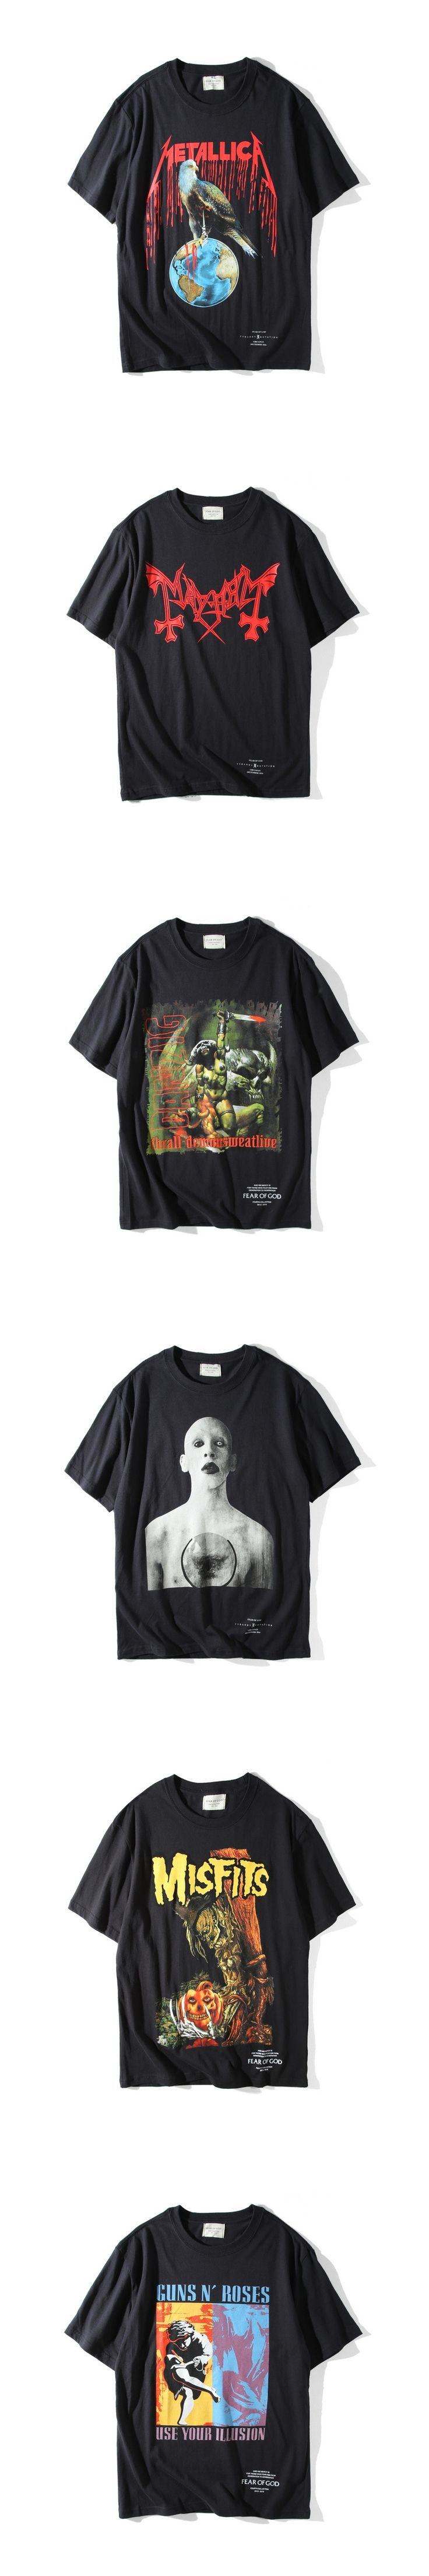 2017 Top Quality Fear Of God Fourth Collection Rock Band Printed T Shirt  Fear Of God Kany West T-Shirt Hip-Hop Tee